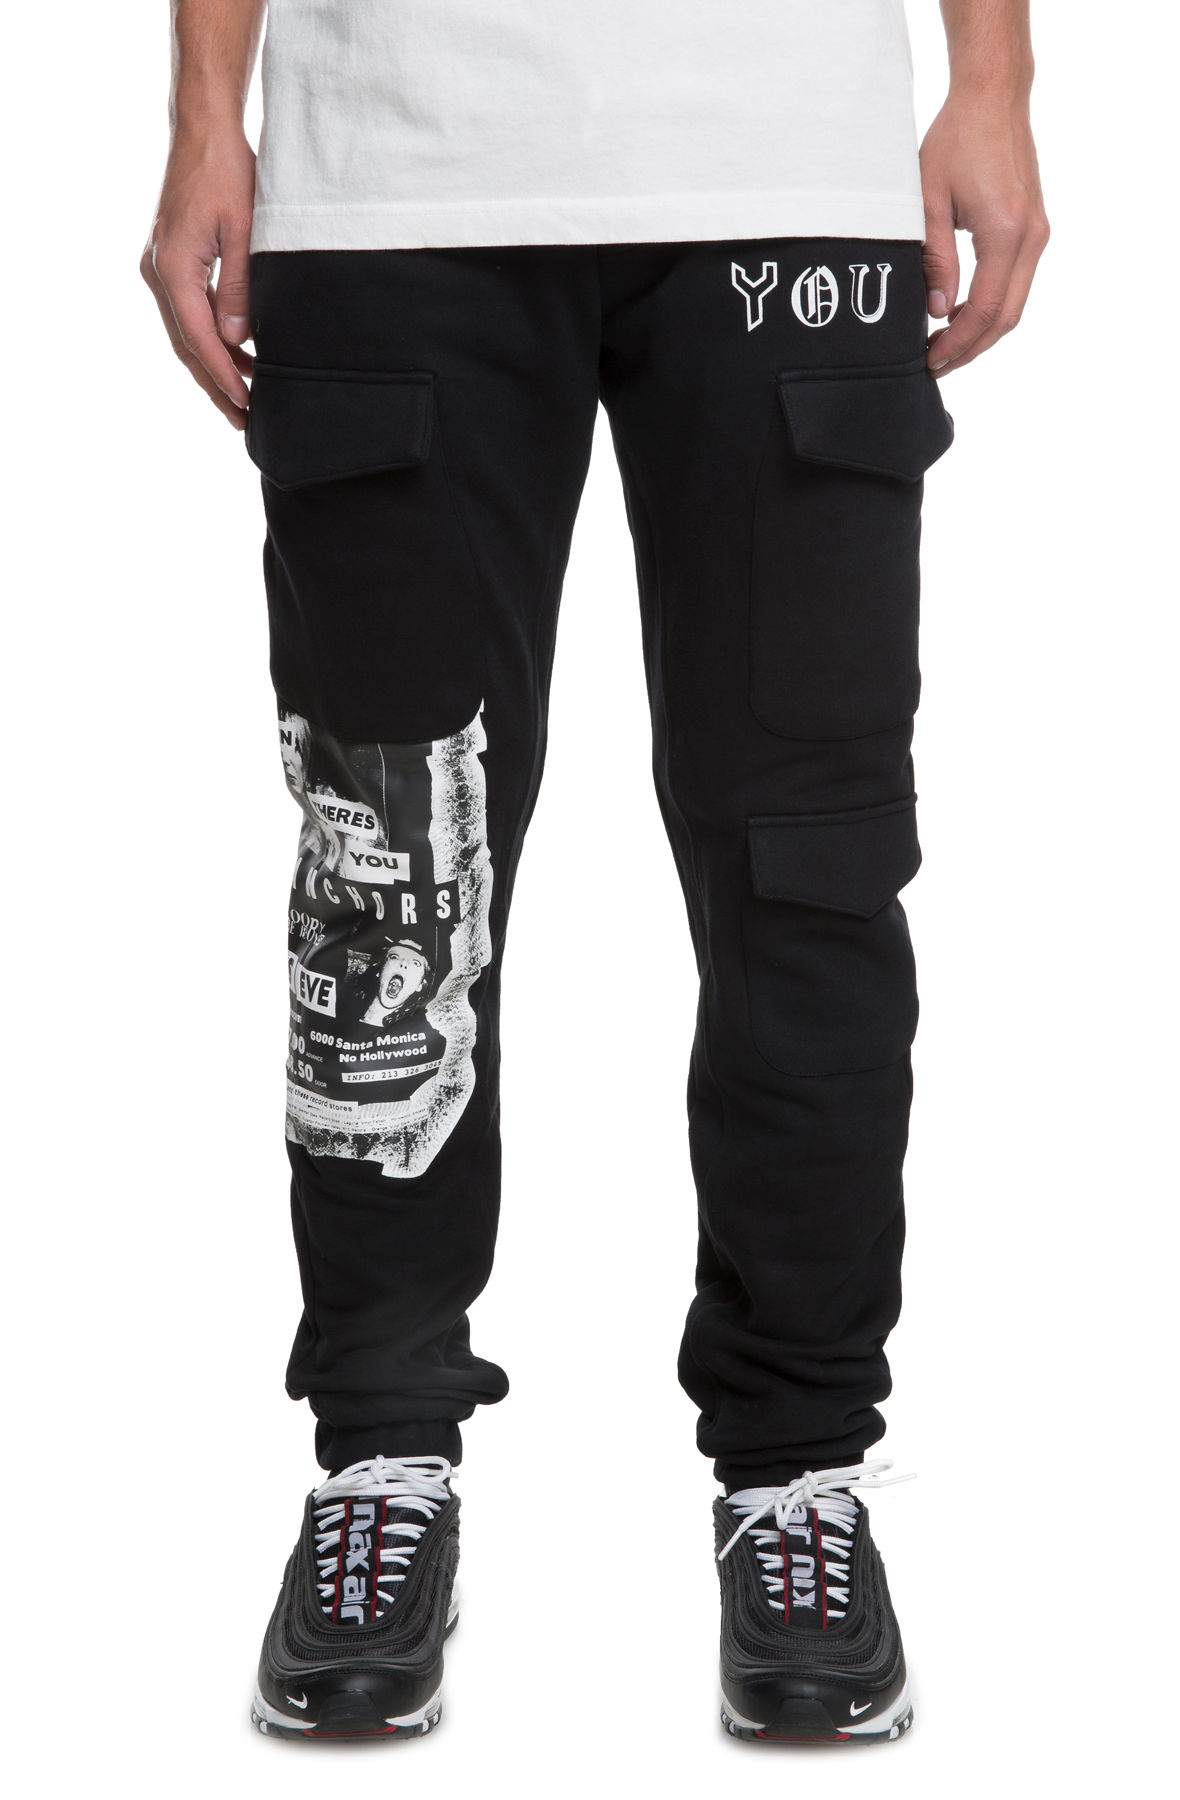 Image of The Electra Sweatpants in Black